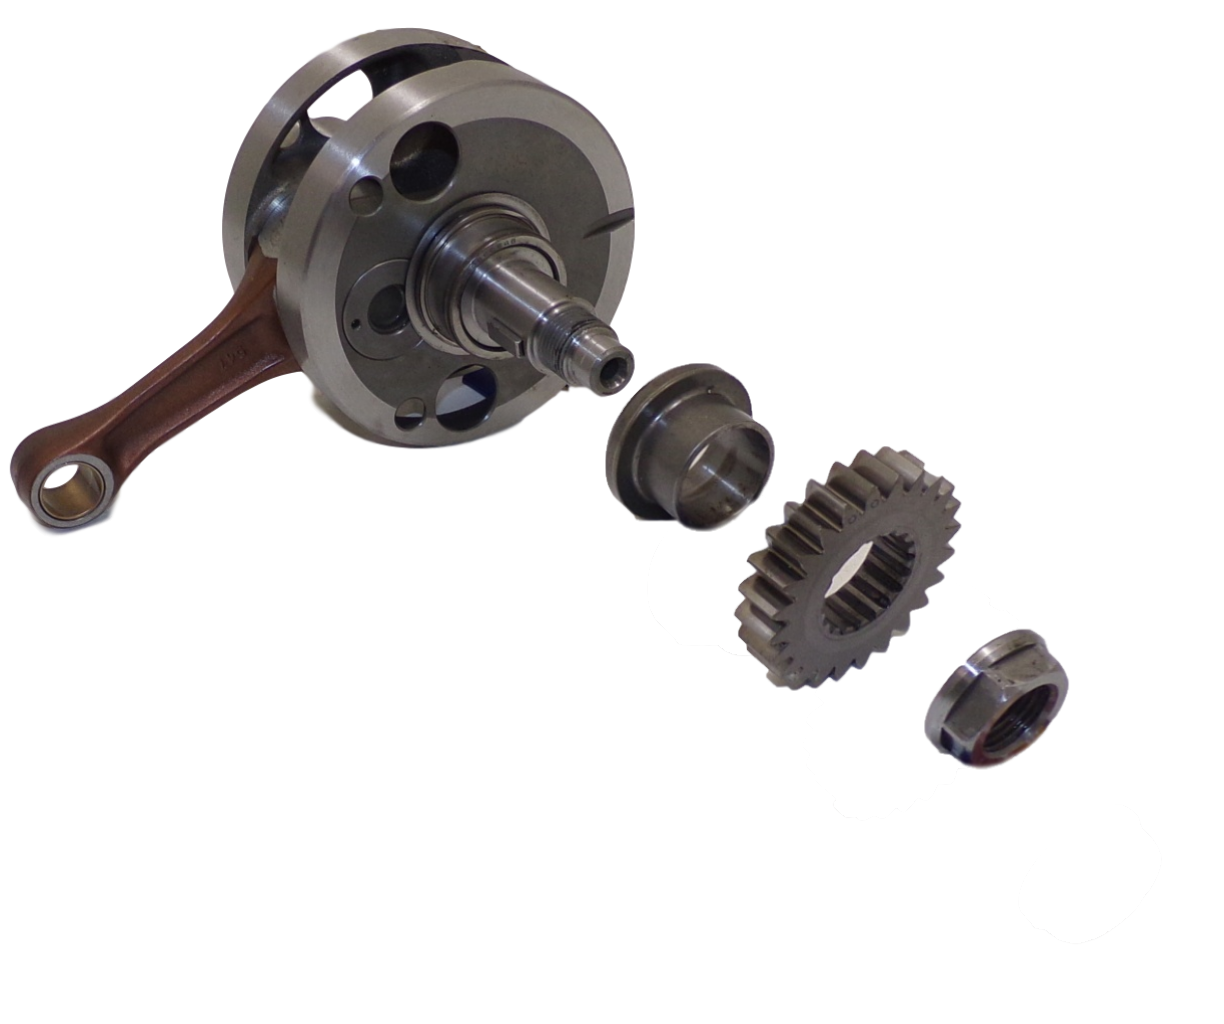 CRANK SHAFTS AND GEARS22